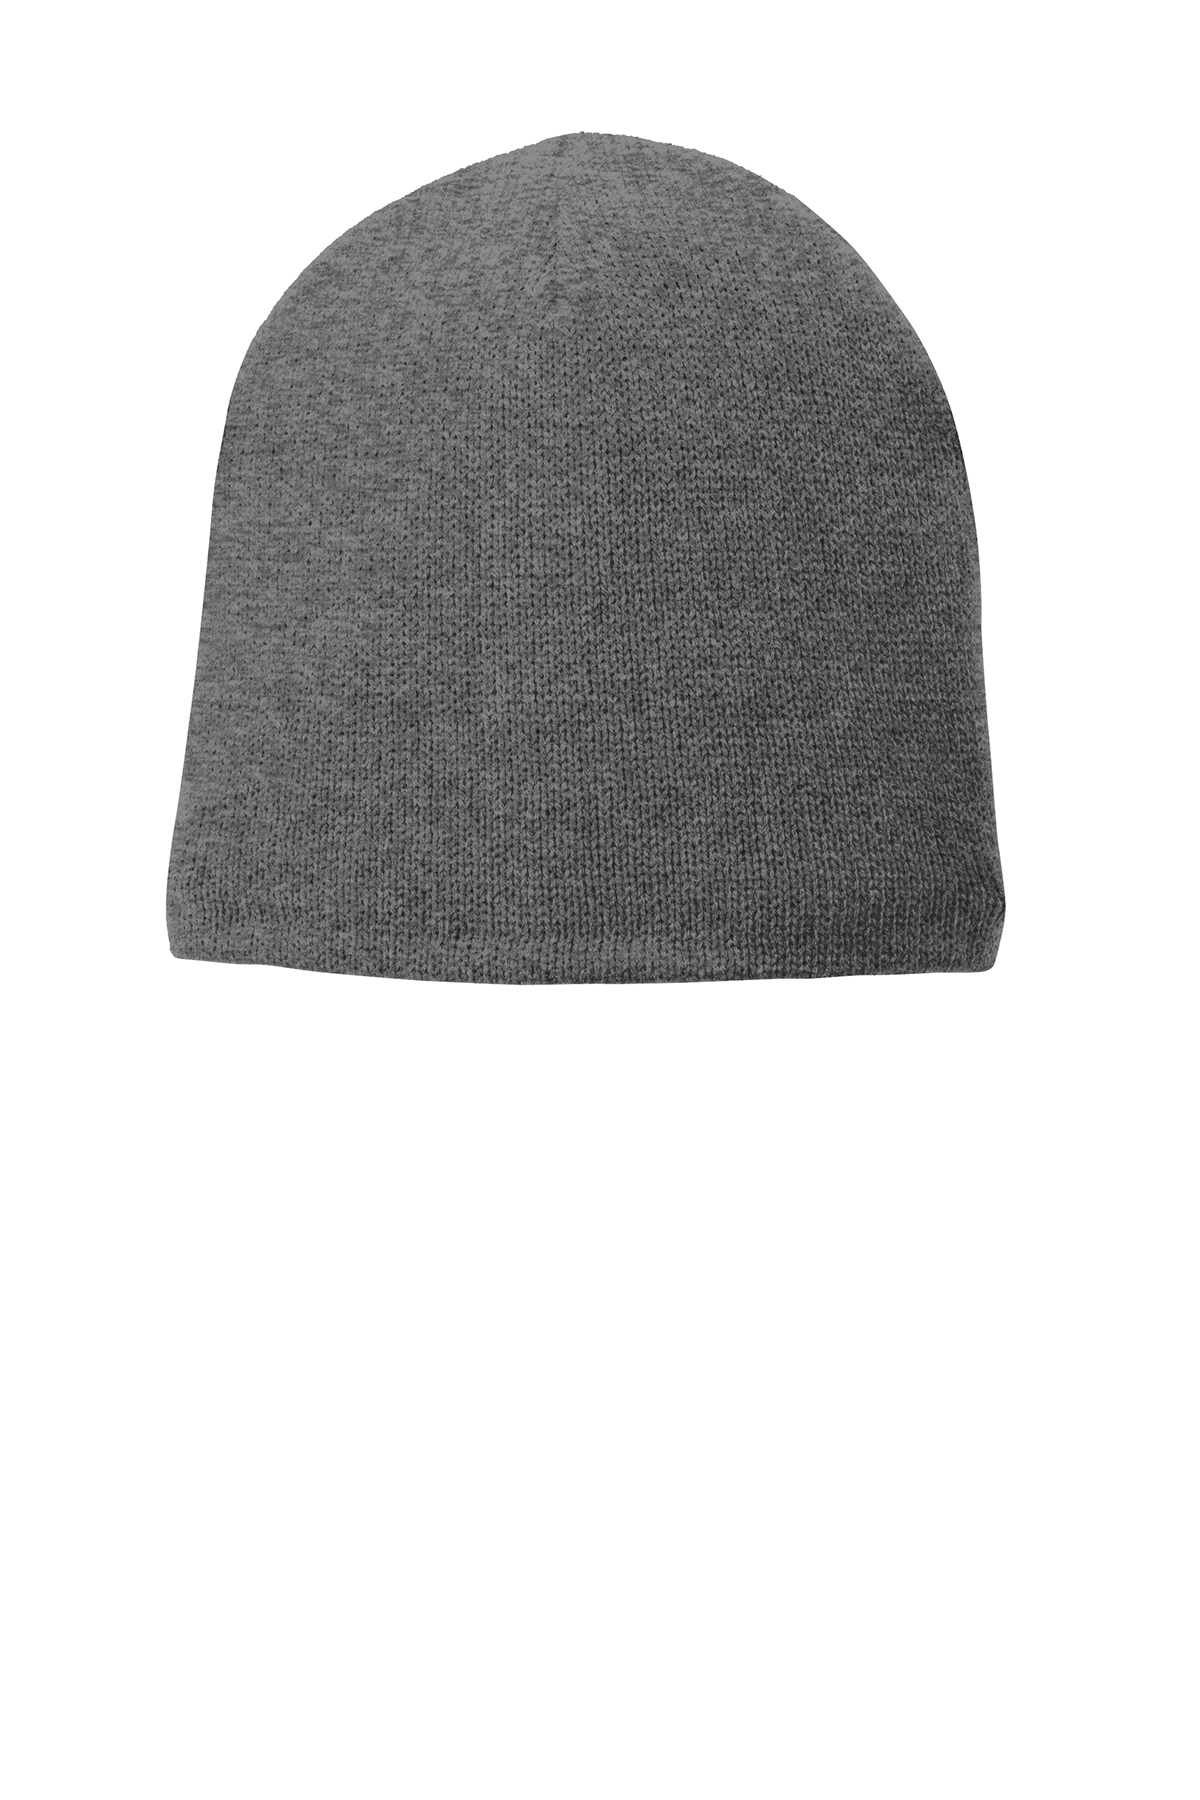 3cc62b77 Port & Company® Fleece-Lined Beanie Cap | Fashion | Caps | SanMar